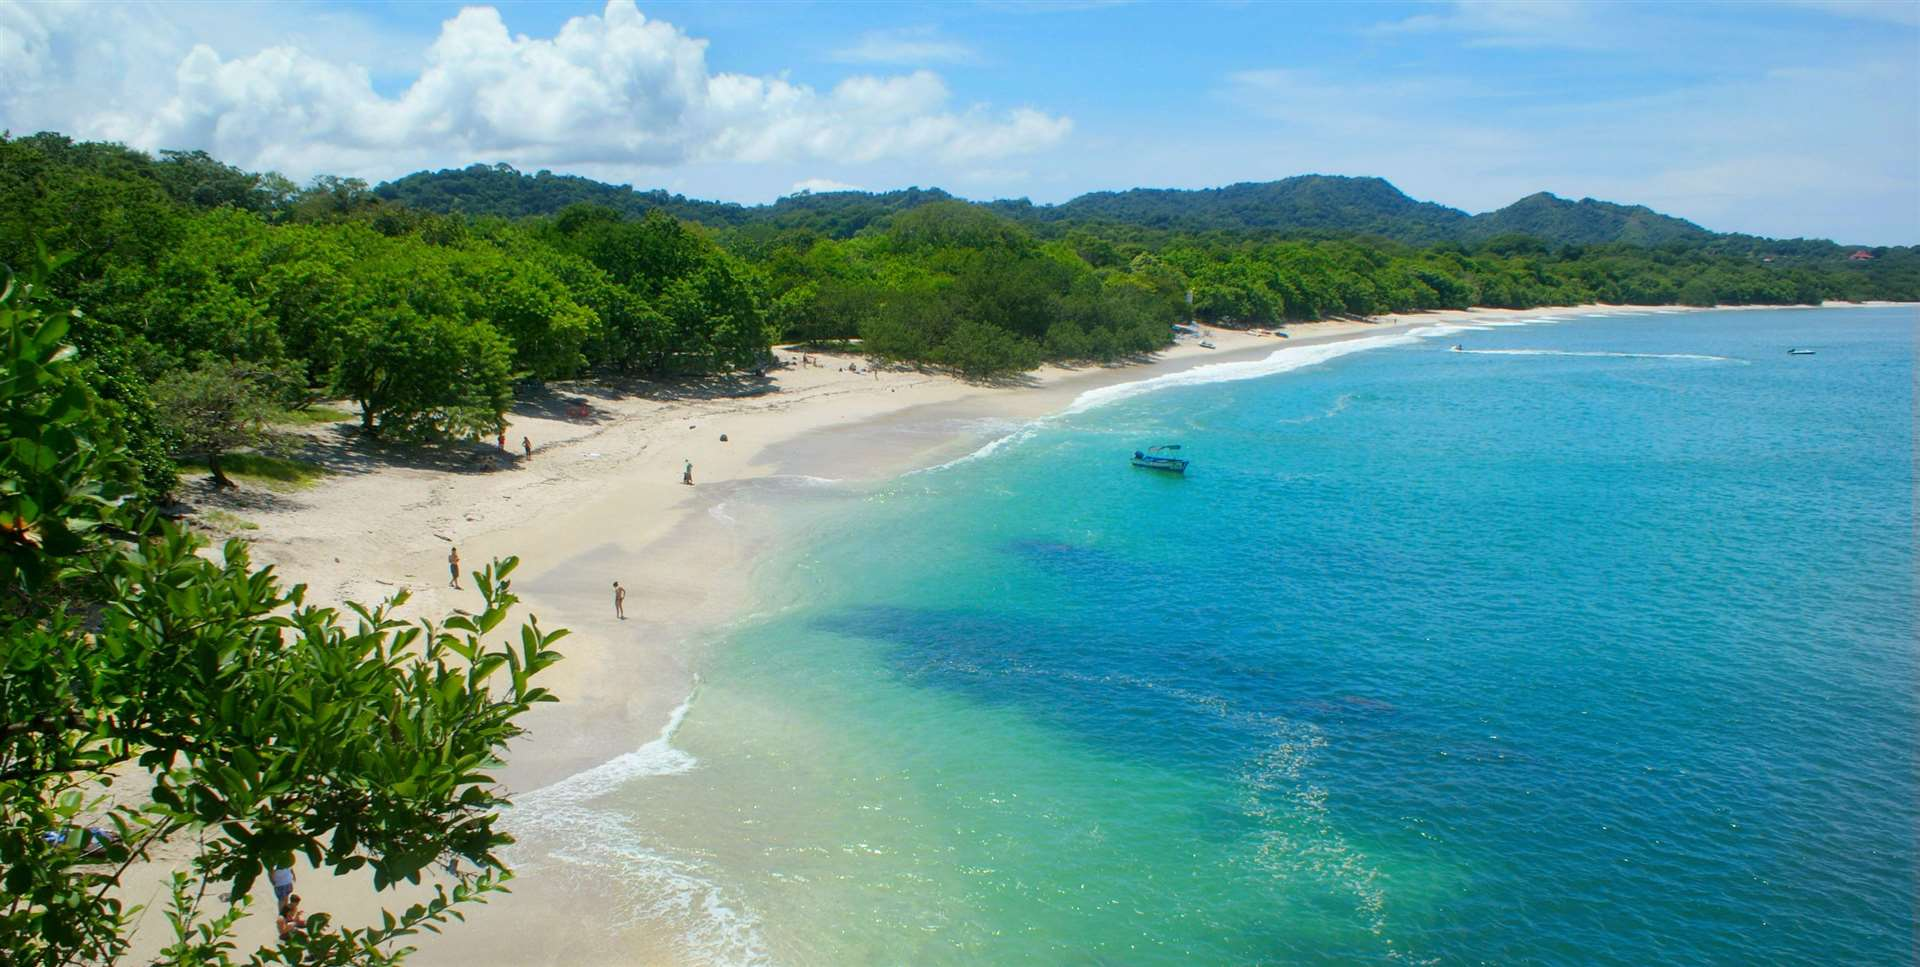 Conchal beach is one of the most beautiful beaches in Central America and the hottest destination spot in Costa Rica.